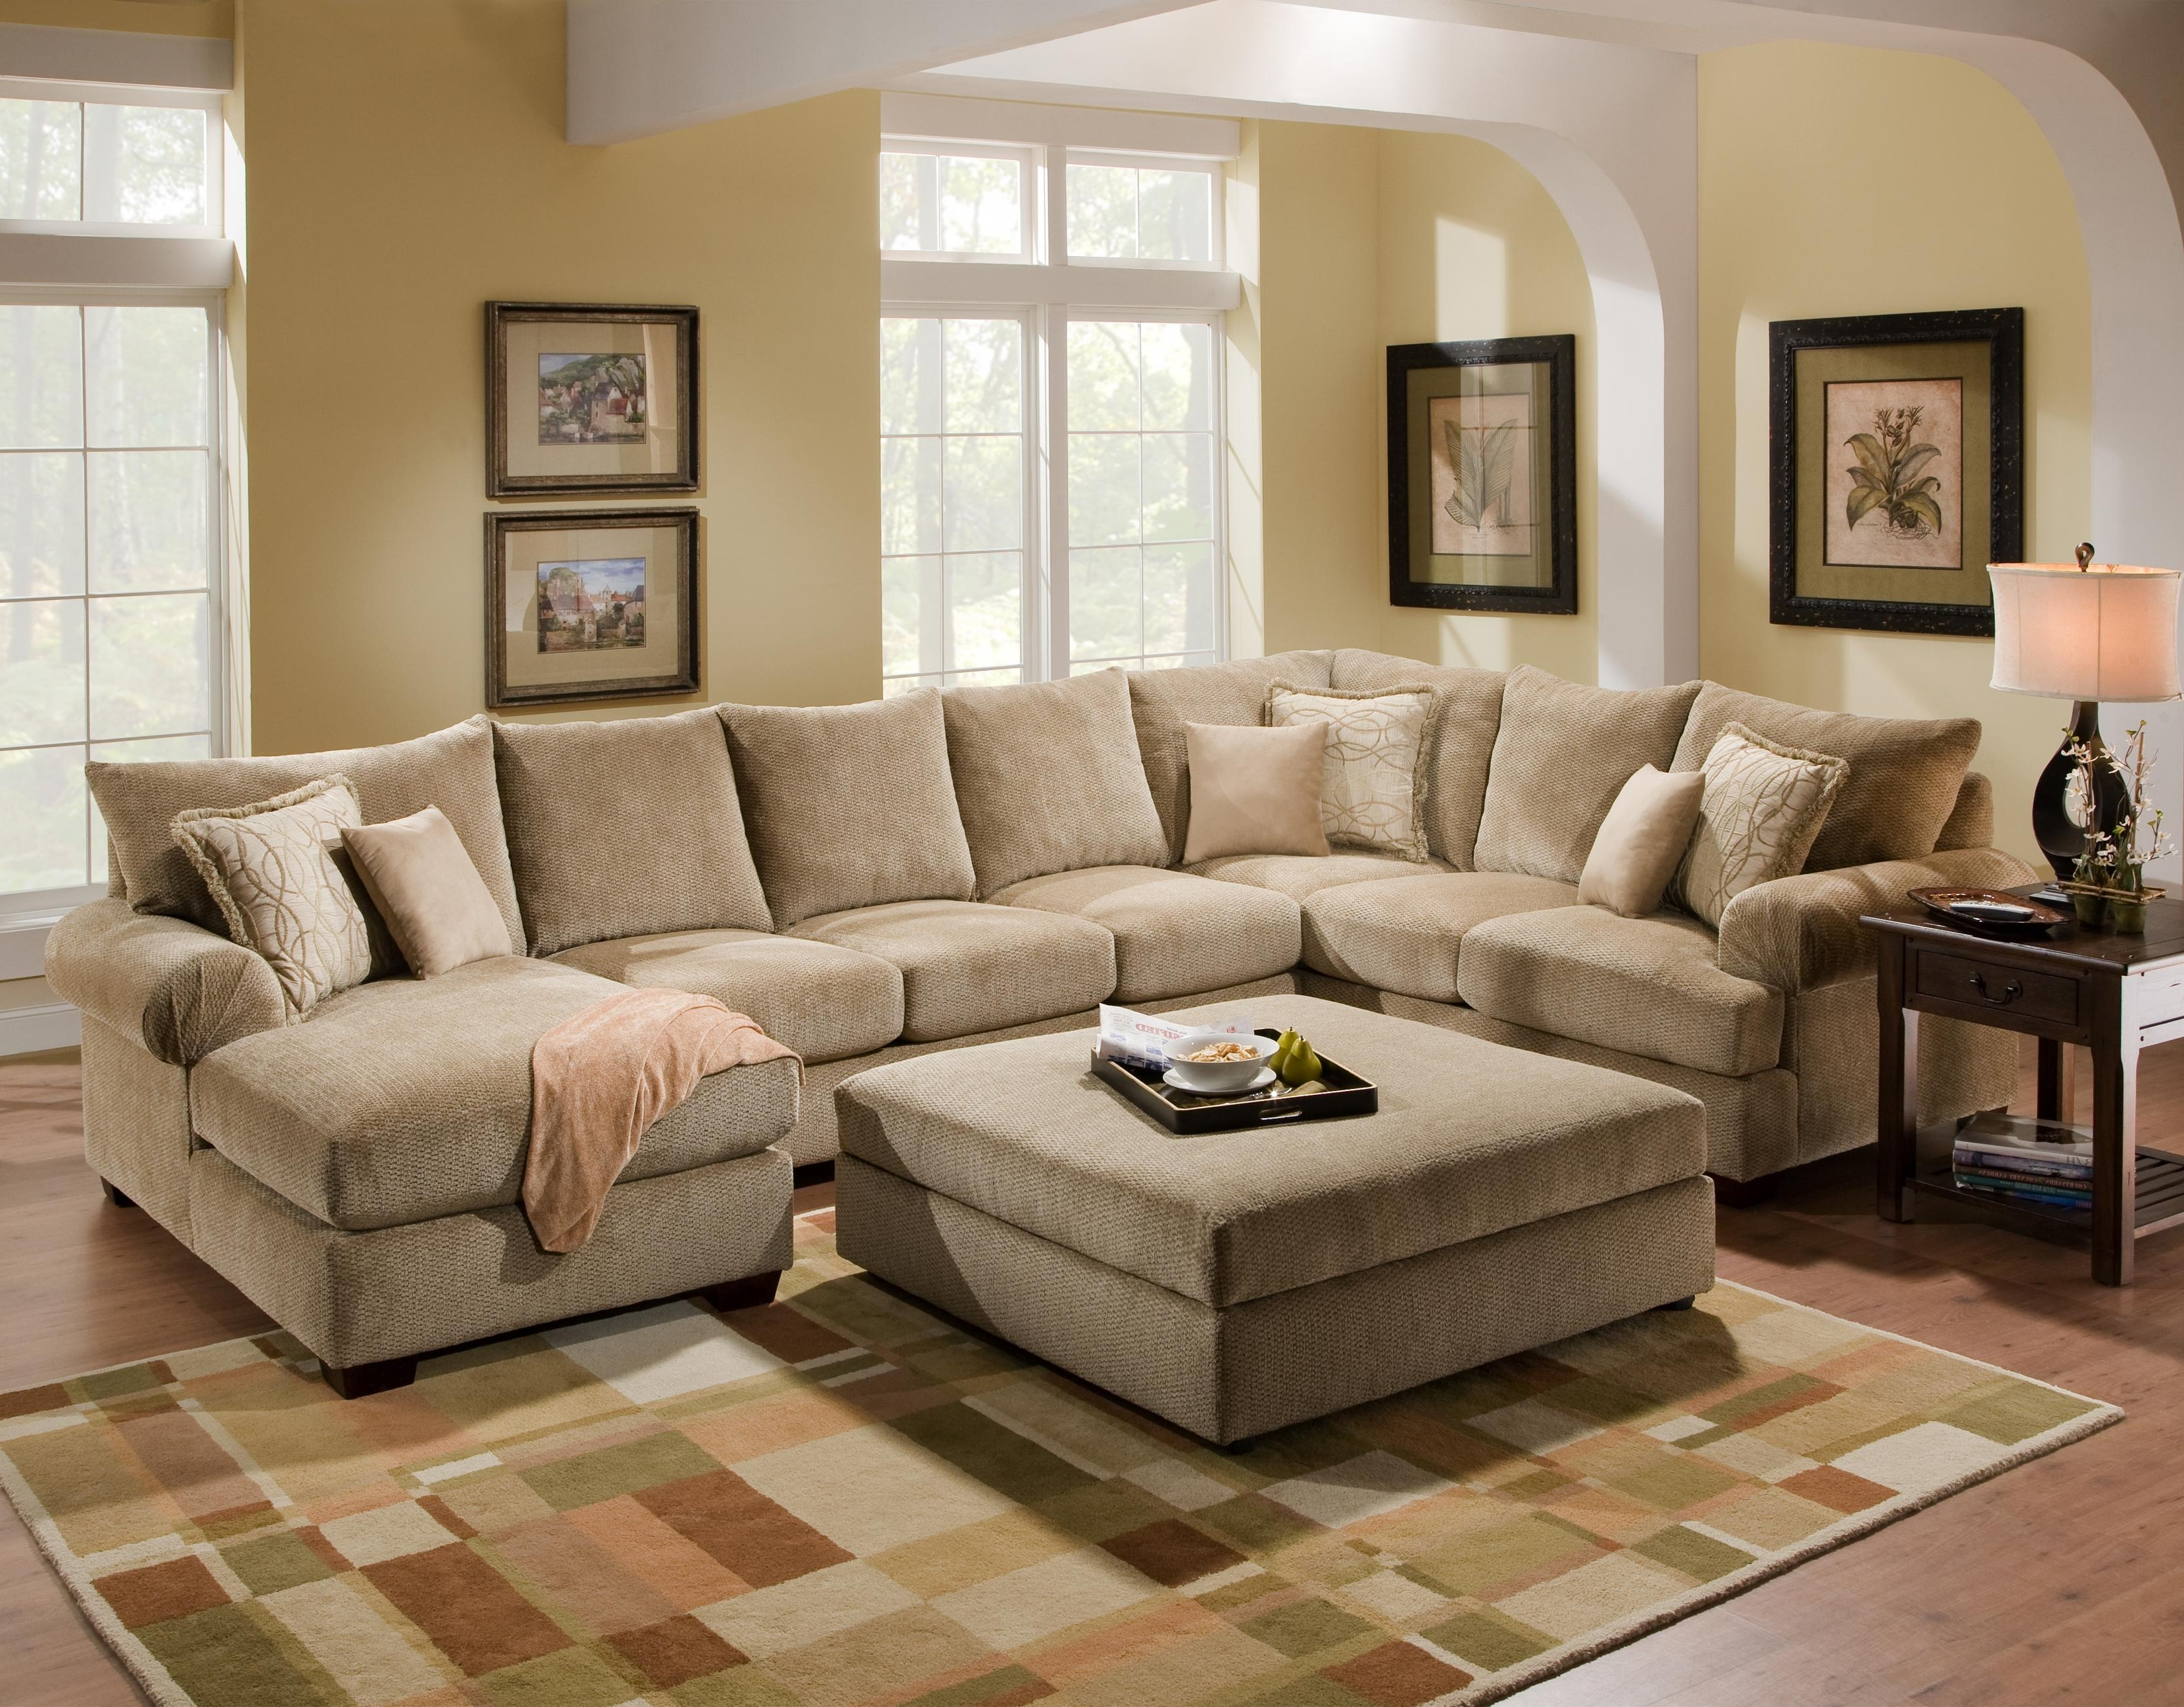 2019 Sams Club Sectional Sofas Pertaining To 4510 Casual Sectional Sofa Group With Chaisecorinthian – Wolf (View 8 of 20)